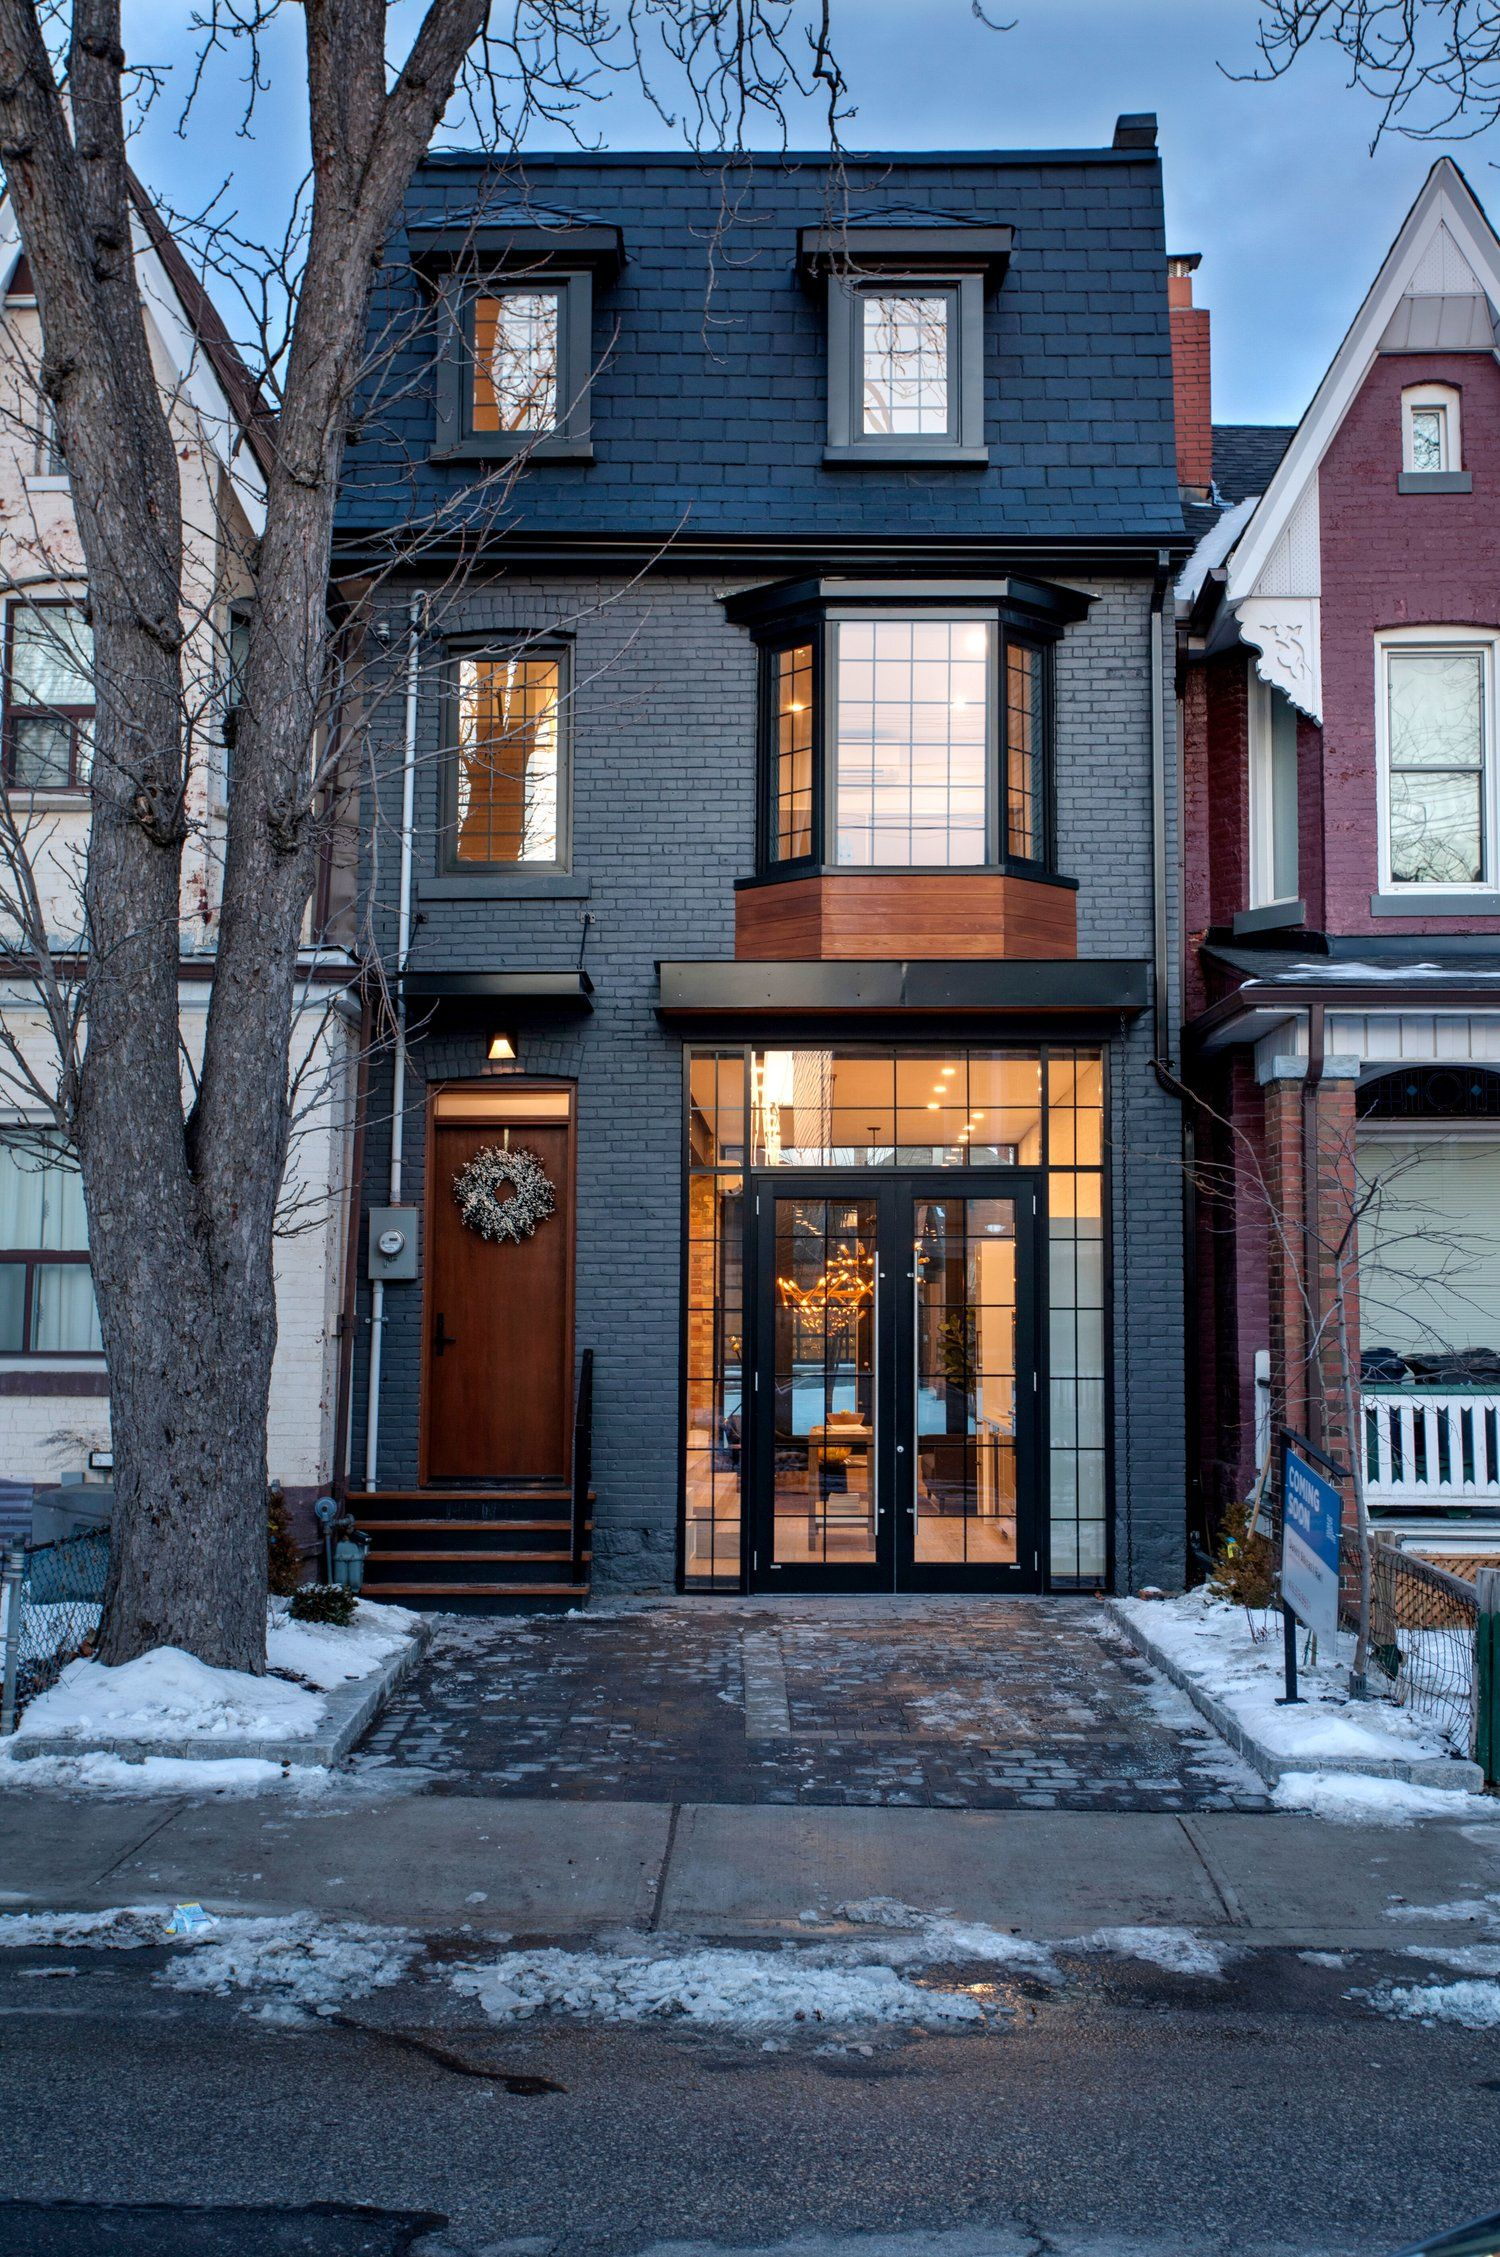 53 Palmerston Avenue – TRINITY-BELLWOODS, TORONTO (28 Comments)